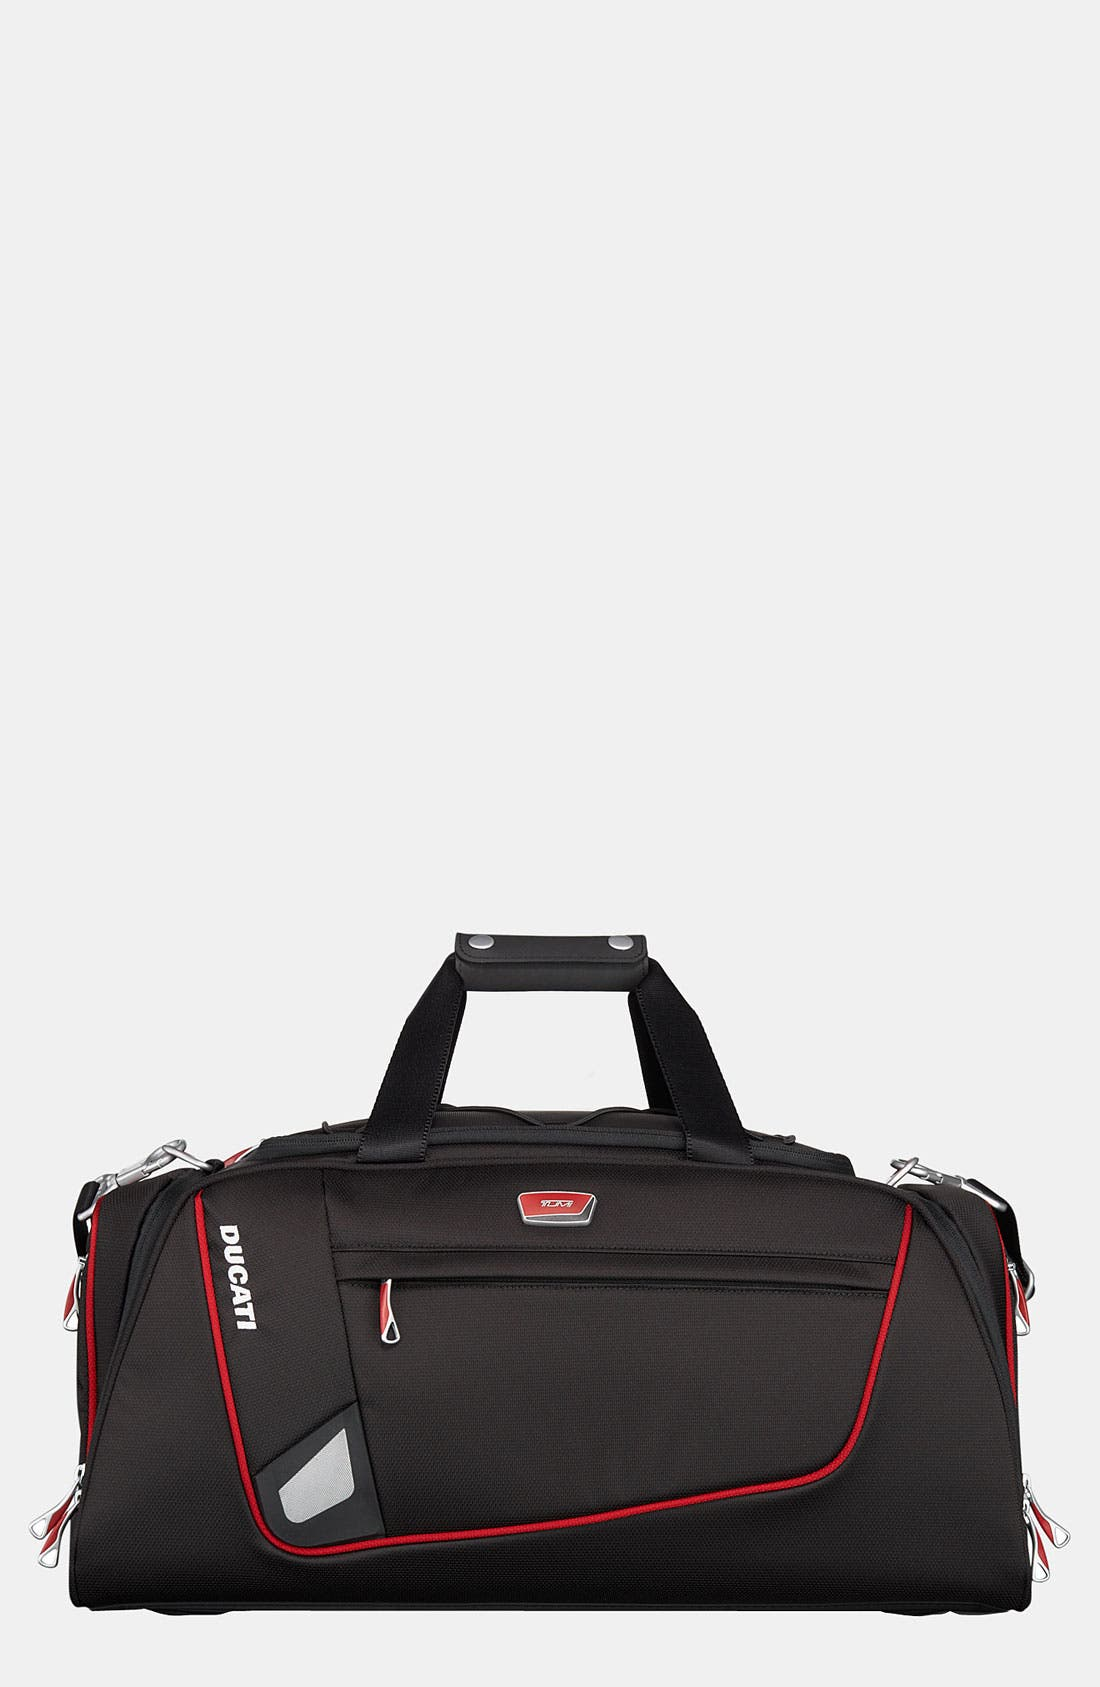 Alternate Image 1 Selected - Tumi 'Ducati - Actuator' Sport Duffel Bag